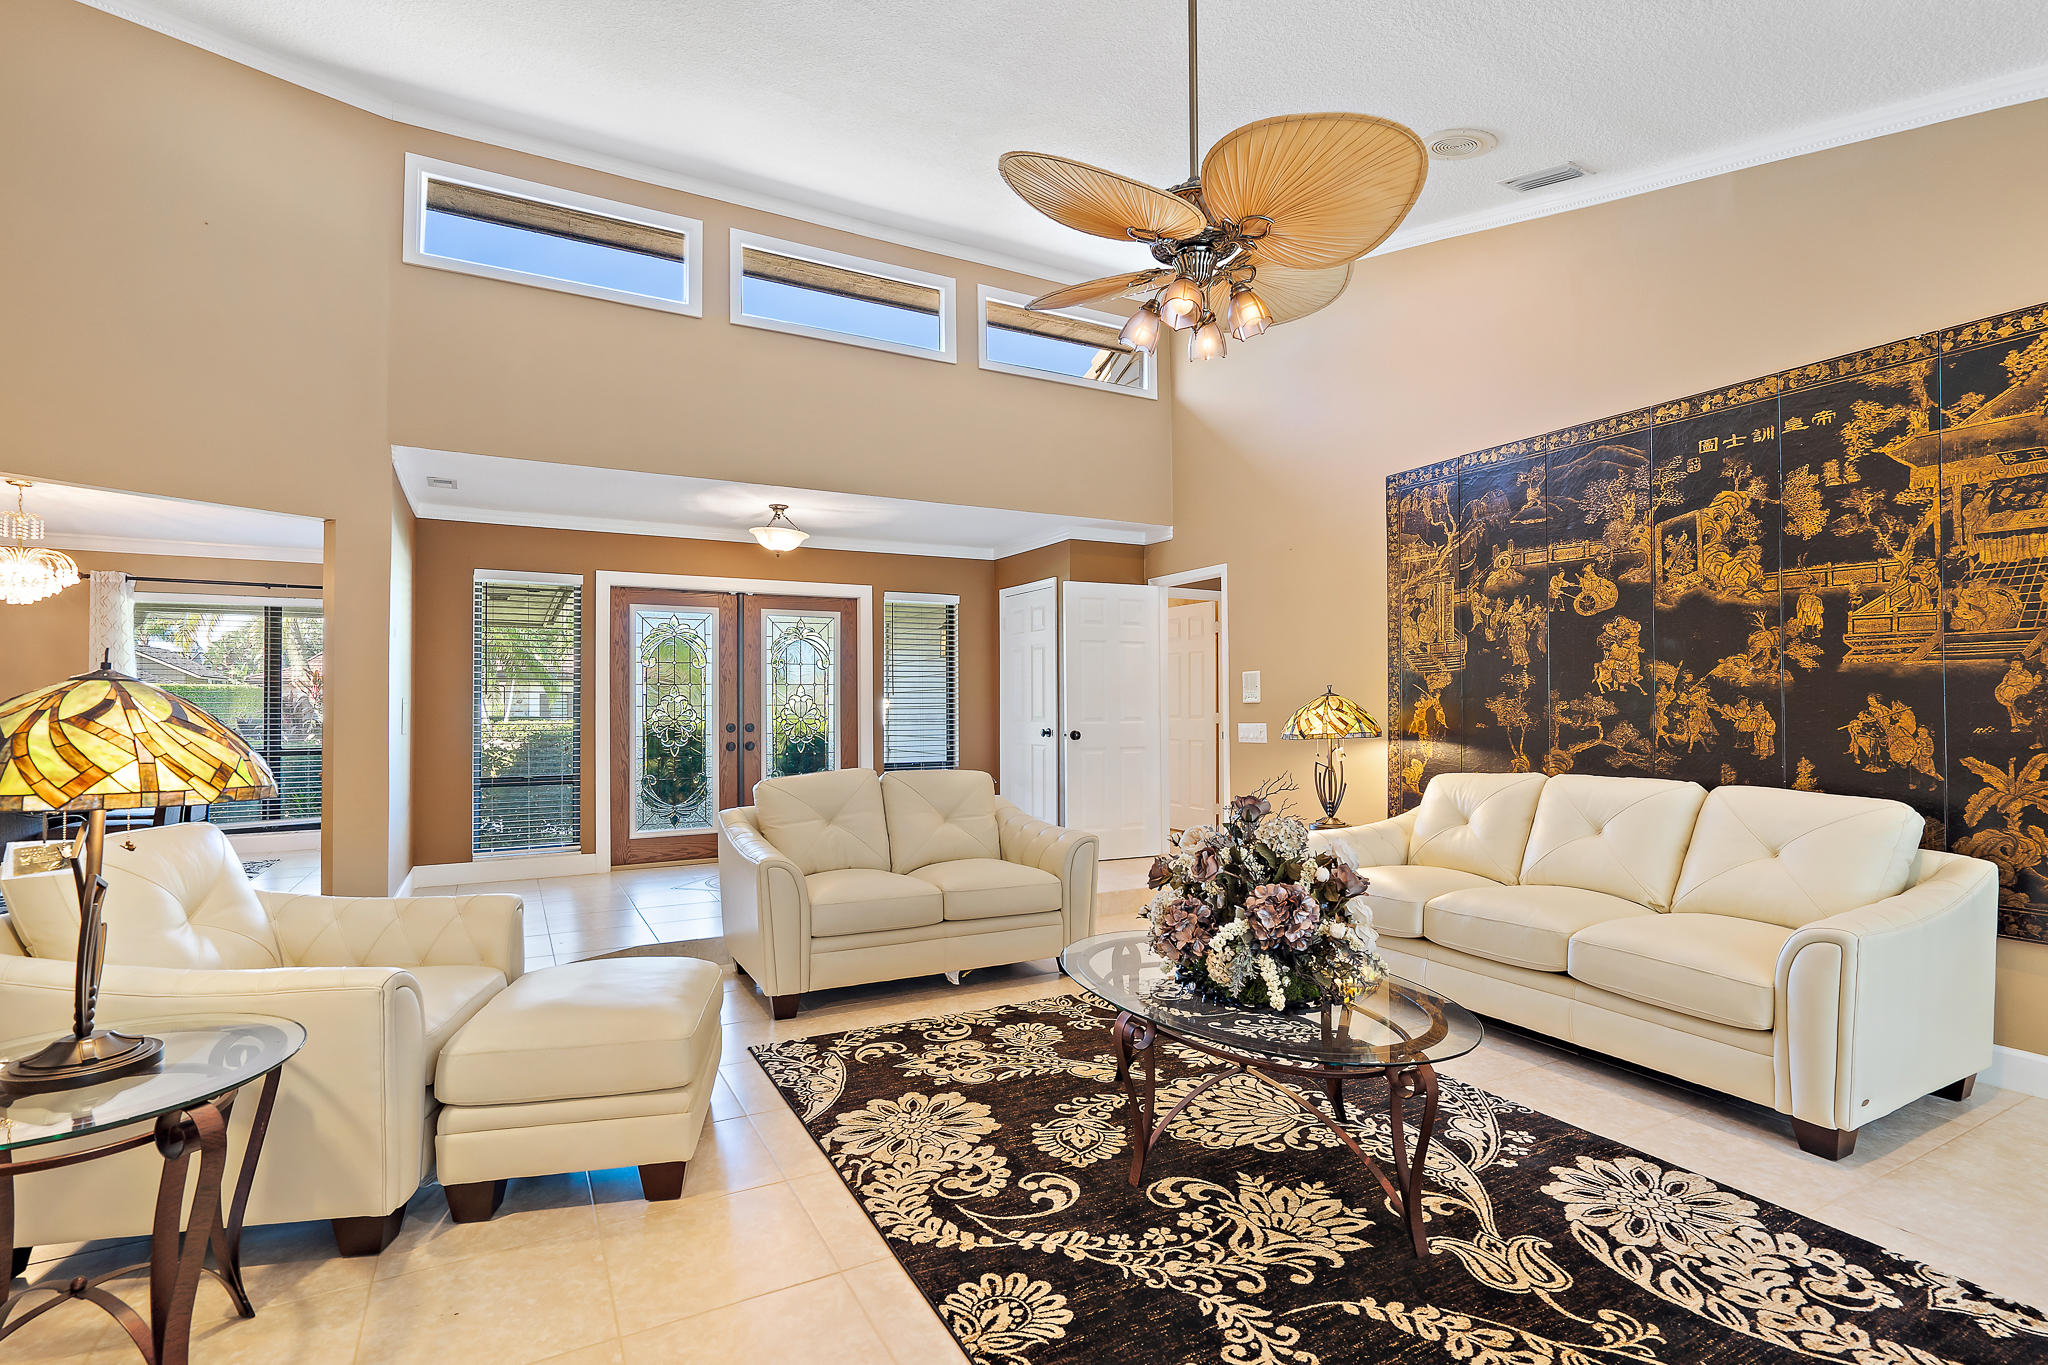 9 Banchory Court, Palm Beach Gardens, Florida 33418, 5 Bedrooms Bedrooms, ,4 BathroomsBathrooms,A,Single family,Banchory,RX-10479426